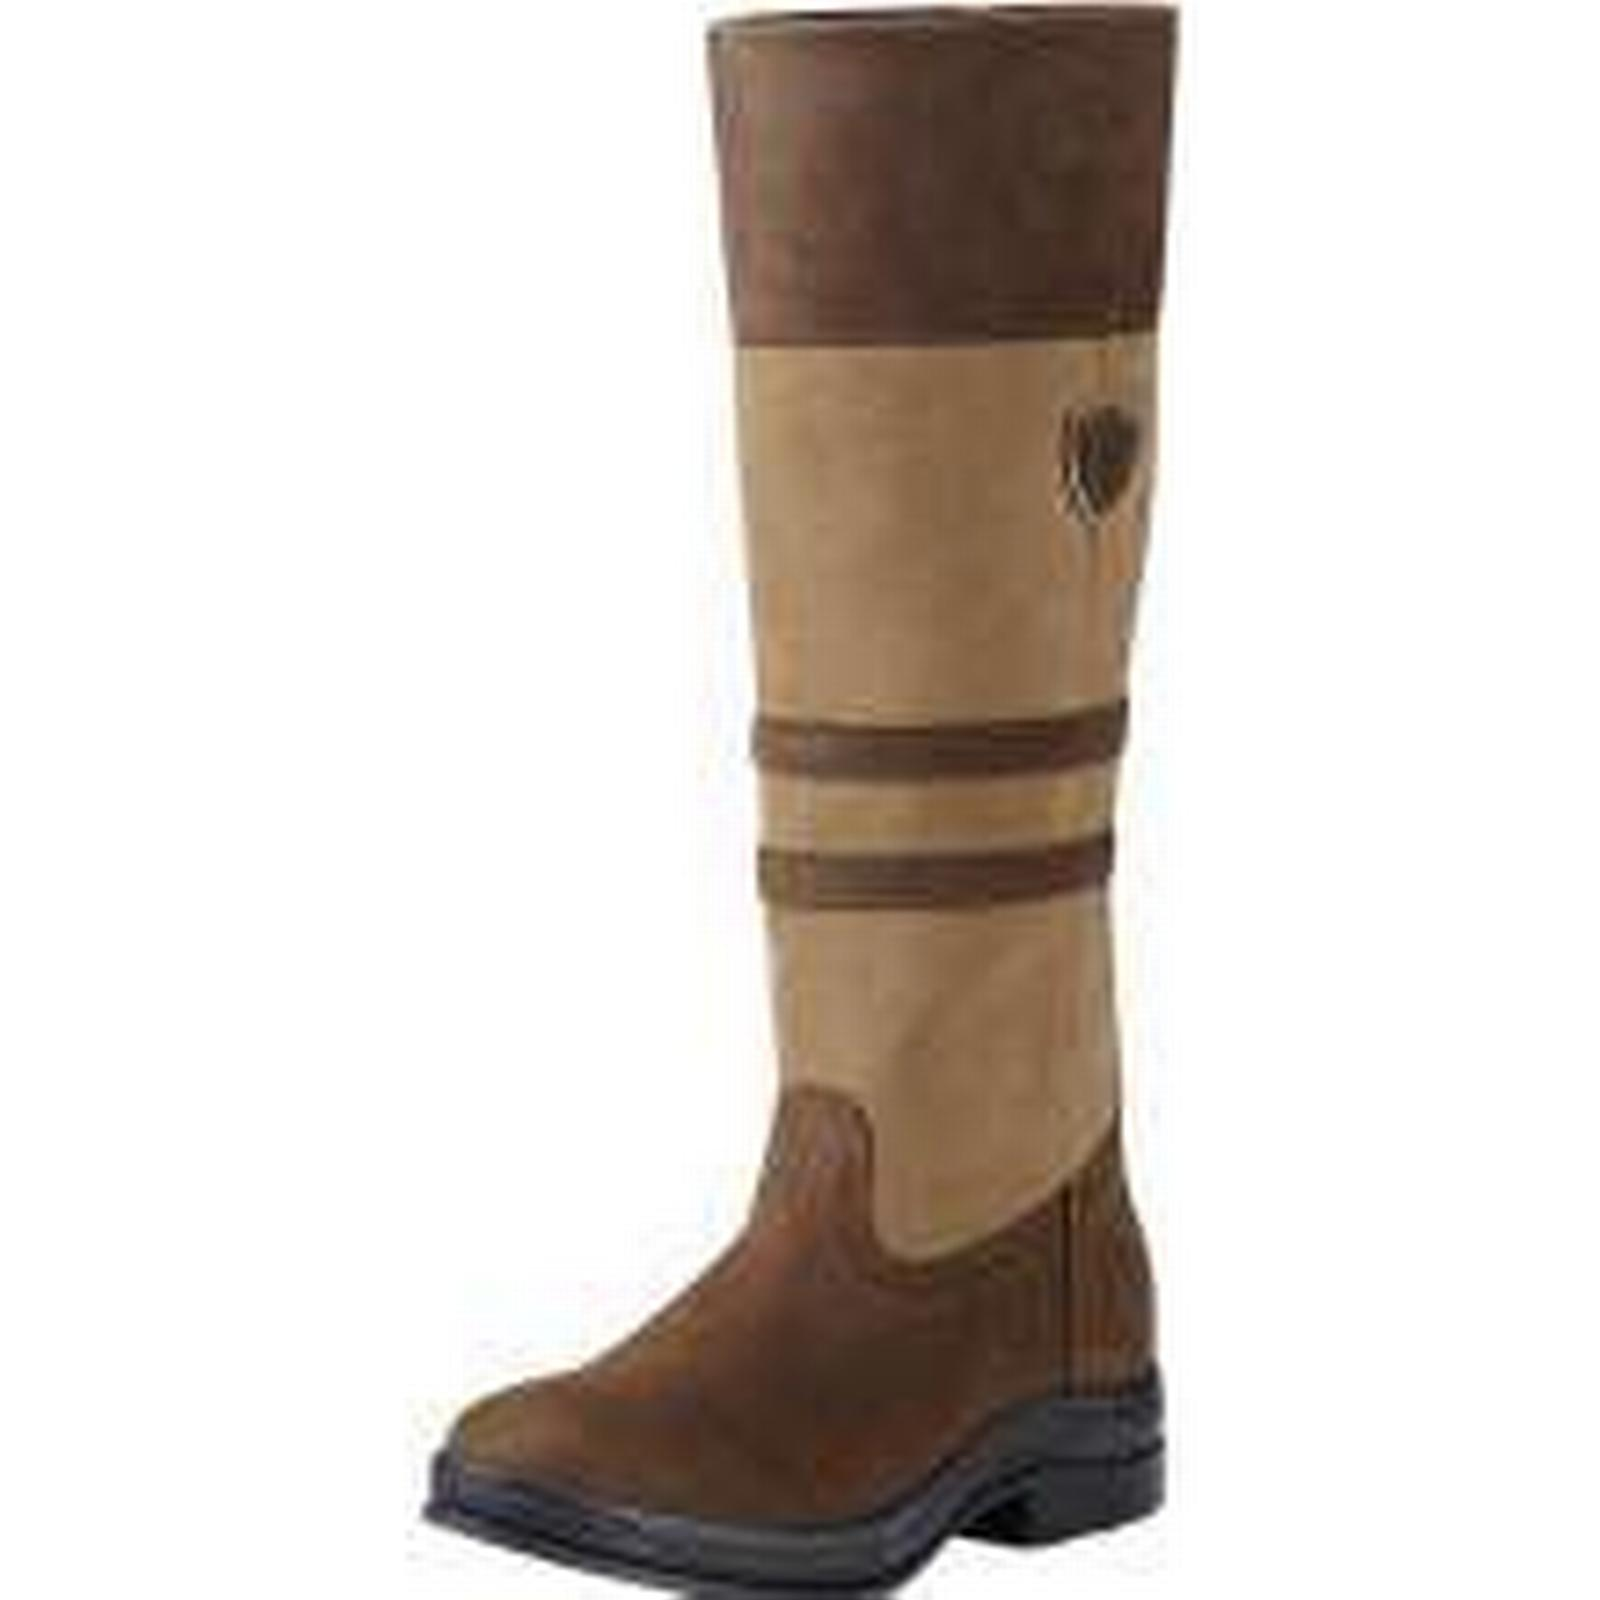 Ariat Ambleside 6 H2O Boots, Flaxen, UK 6 Ambleside Regular Calf c37966